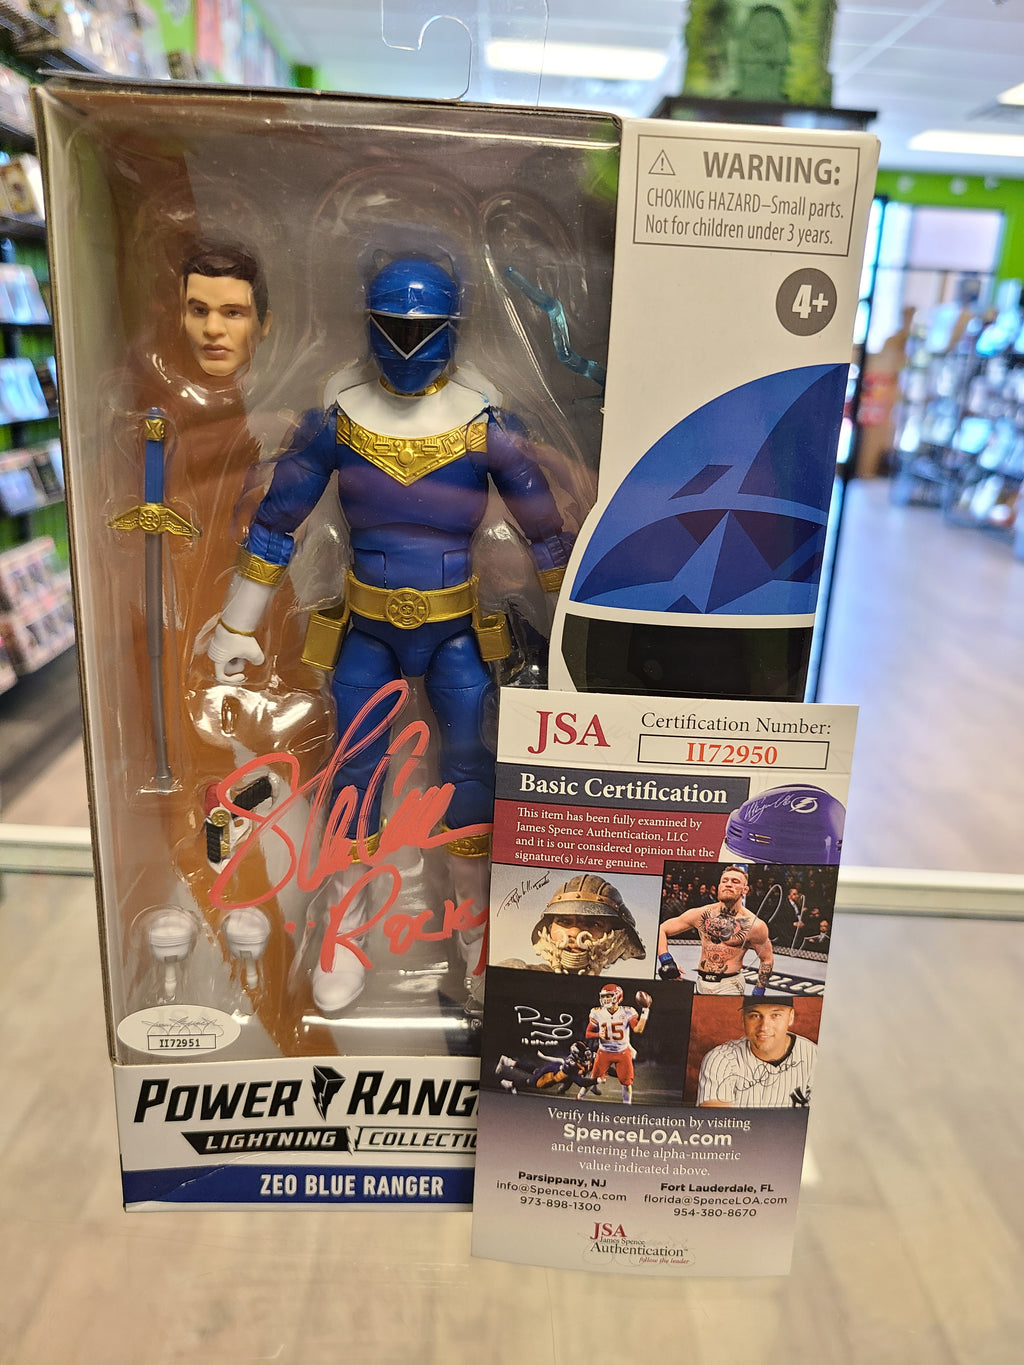 Hasbro Power Rangers Lighting Collection Zeo Blue Ranger Signed by Steve Cardenas